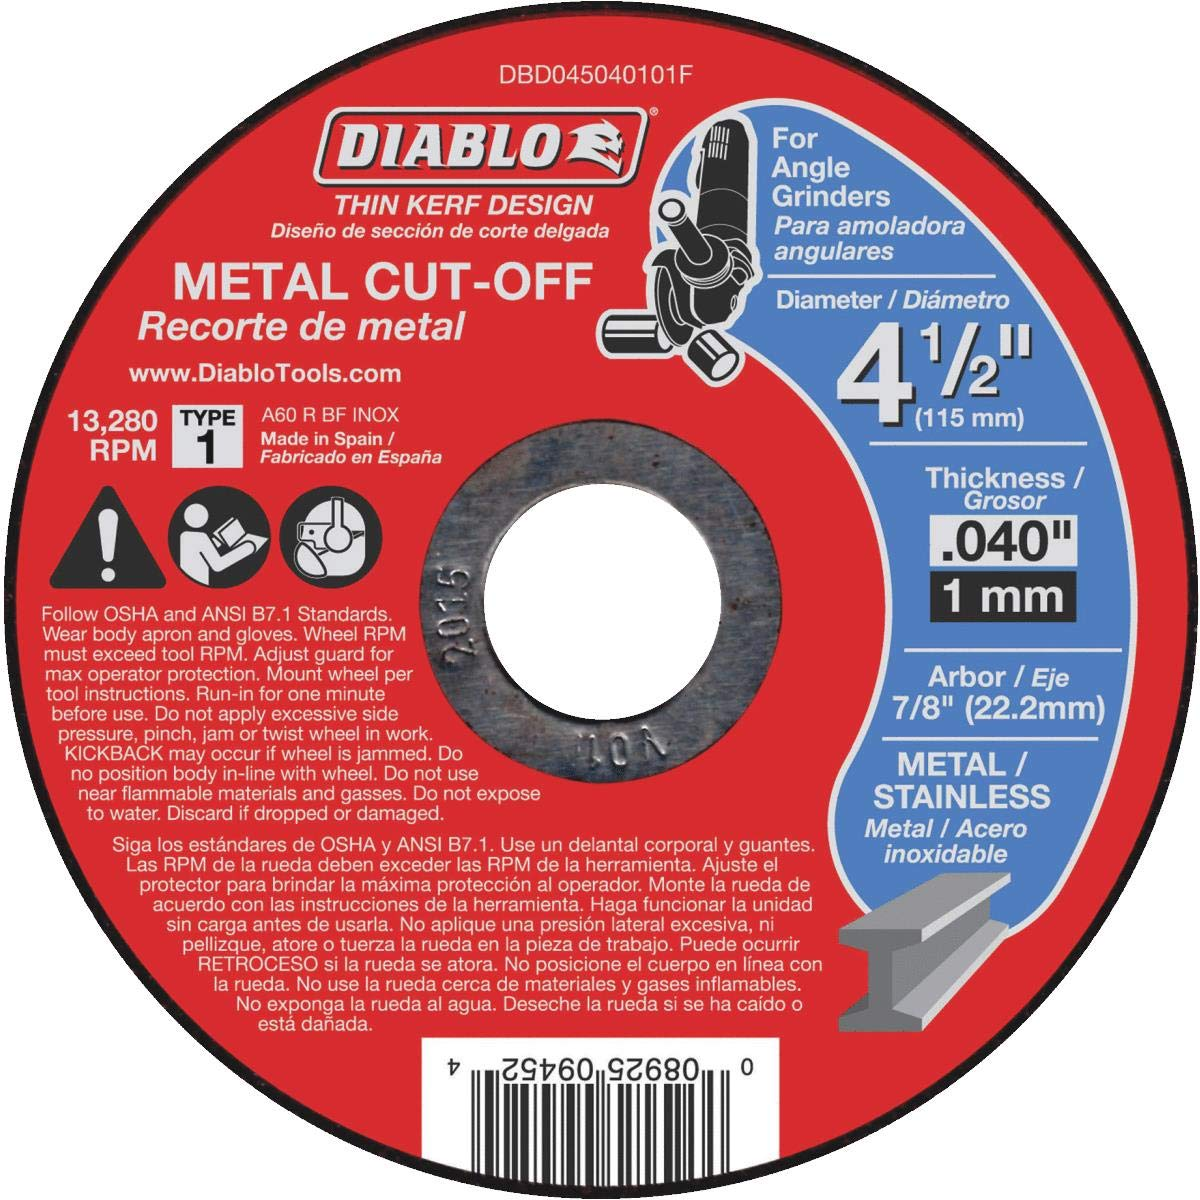 3. Diablo Thin Kerf Metal Cut Off Wheel